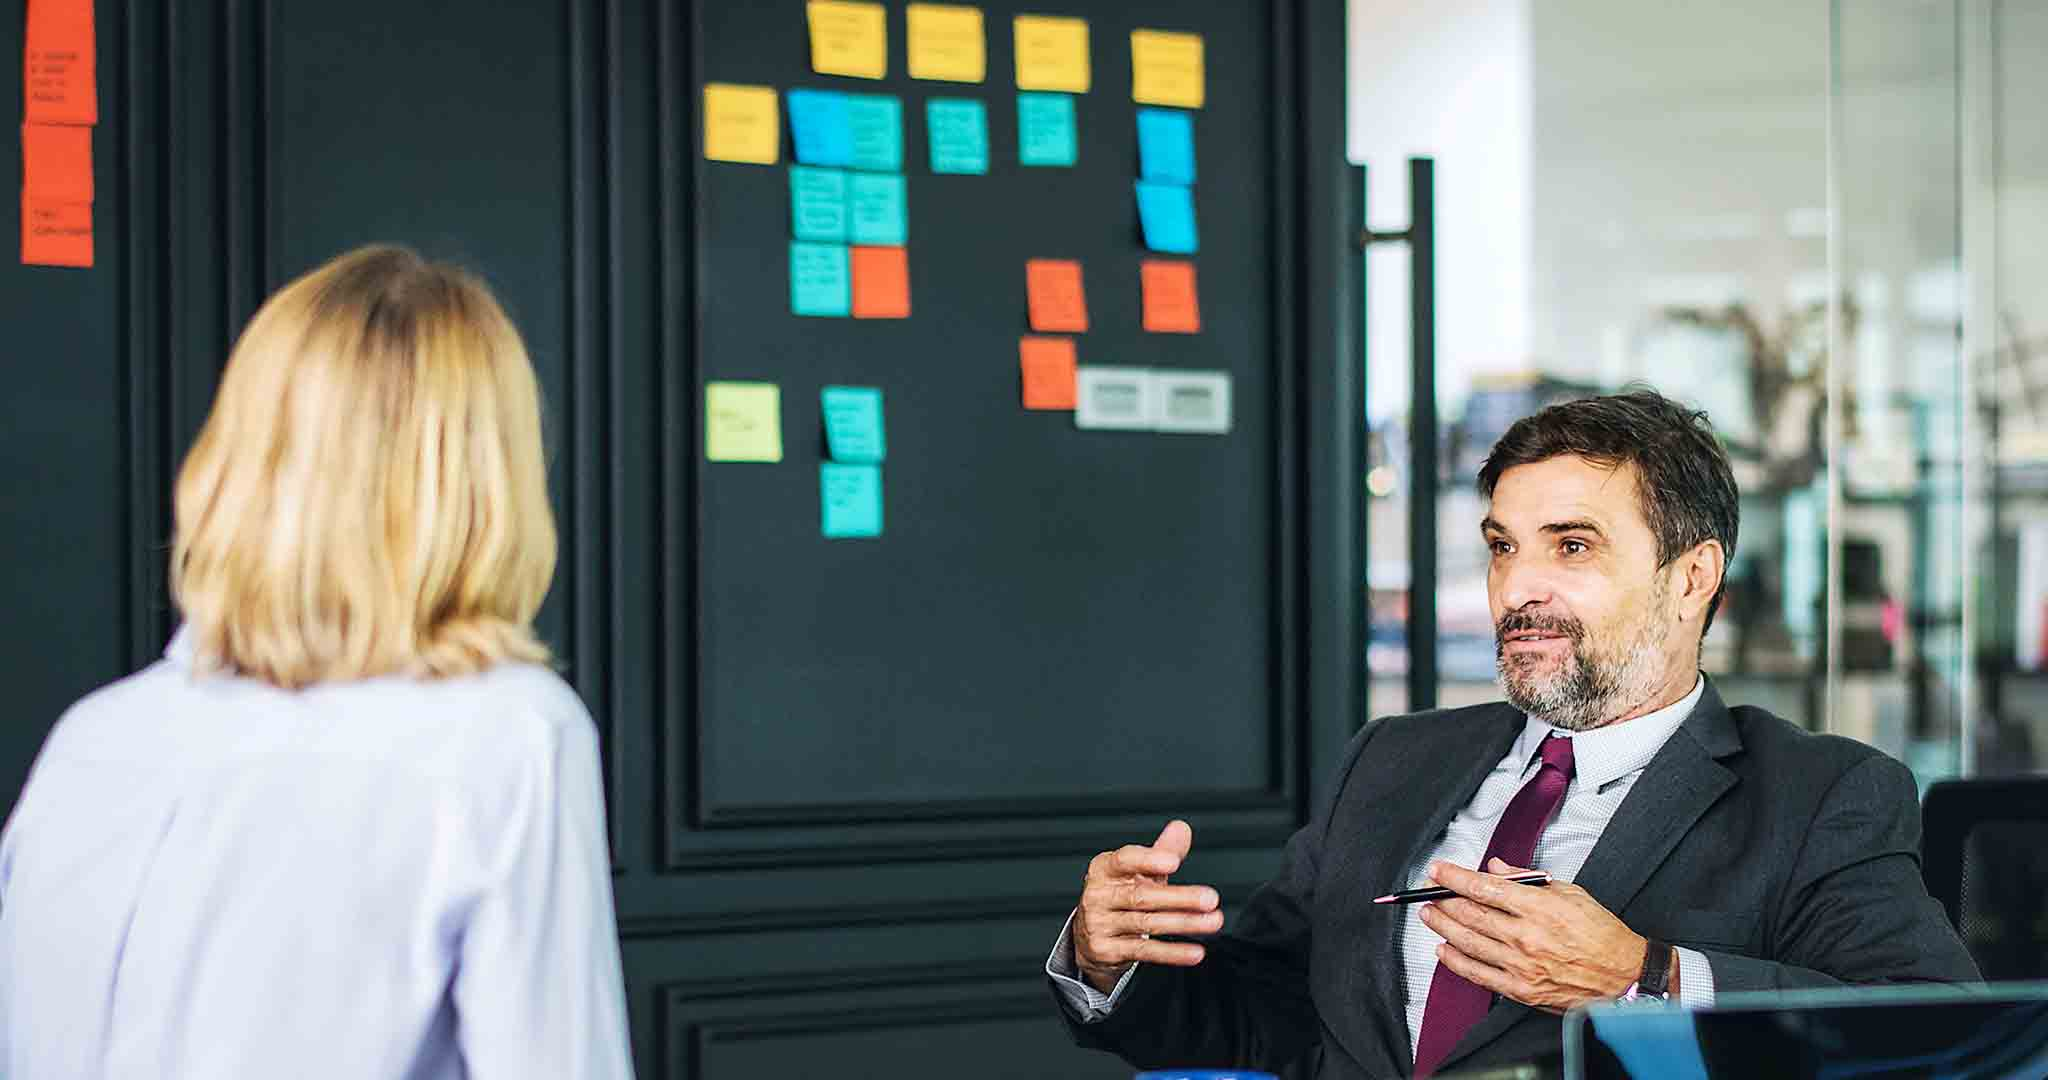 adult analyzing attentively meeting stock photos